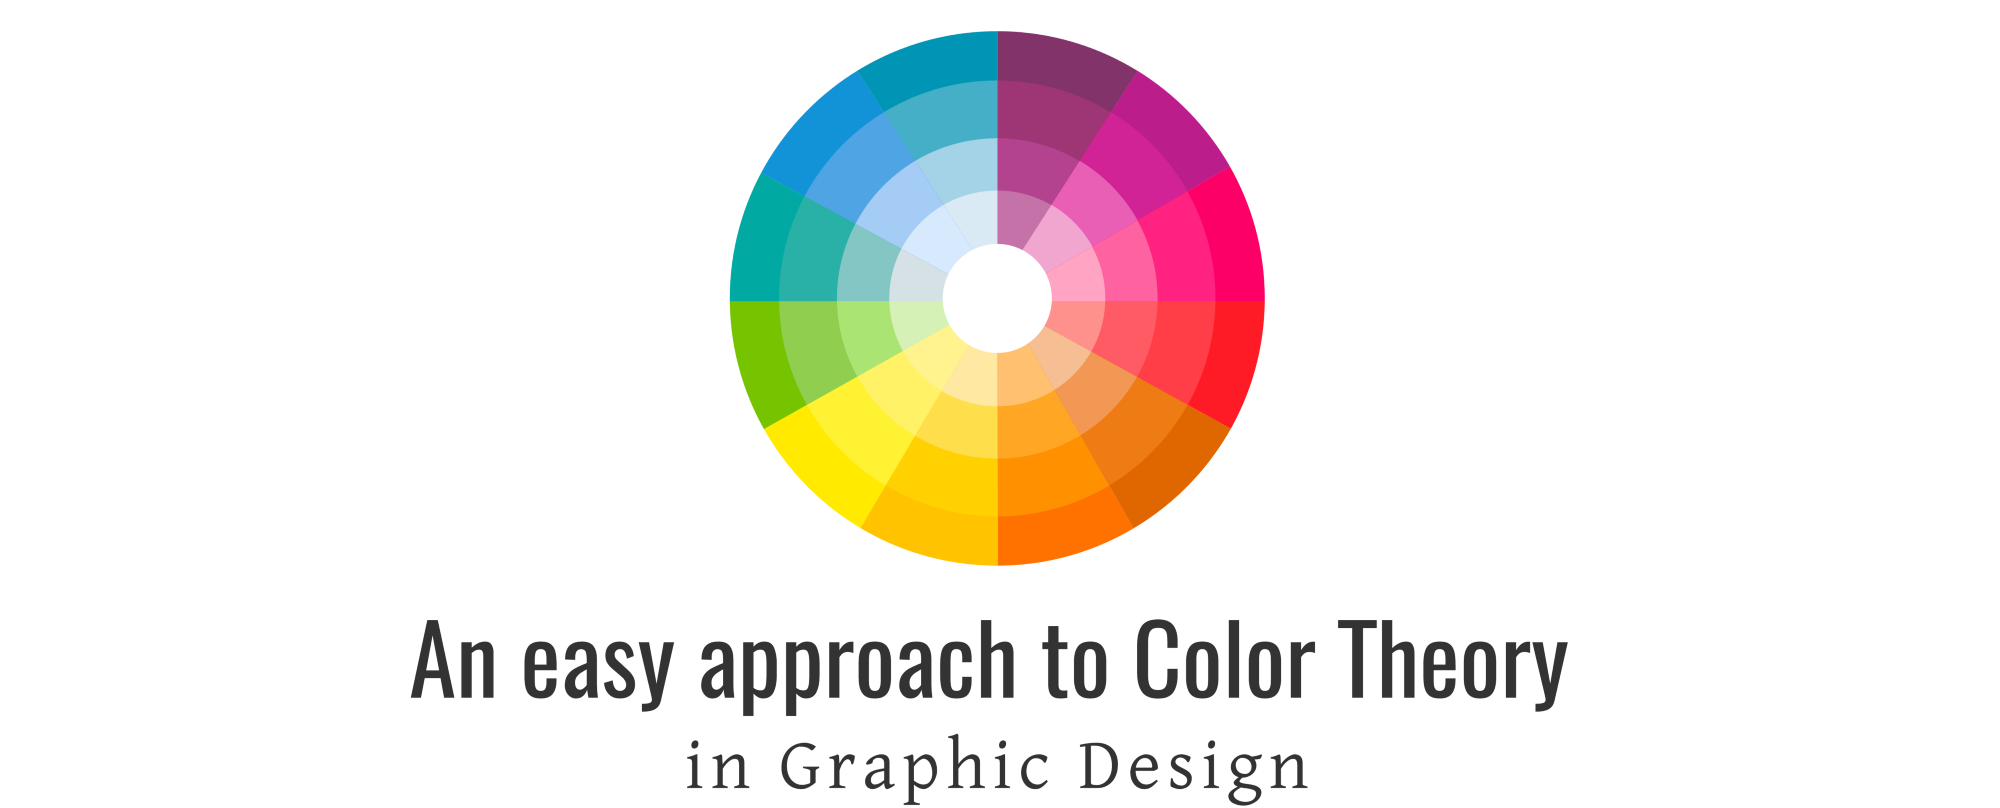 An Easy Approach To Color Theory In Graphic Design